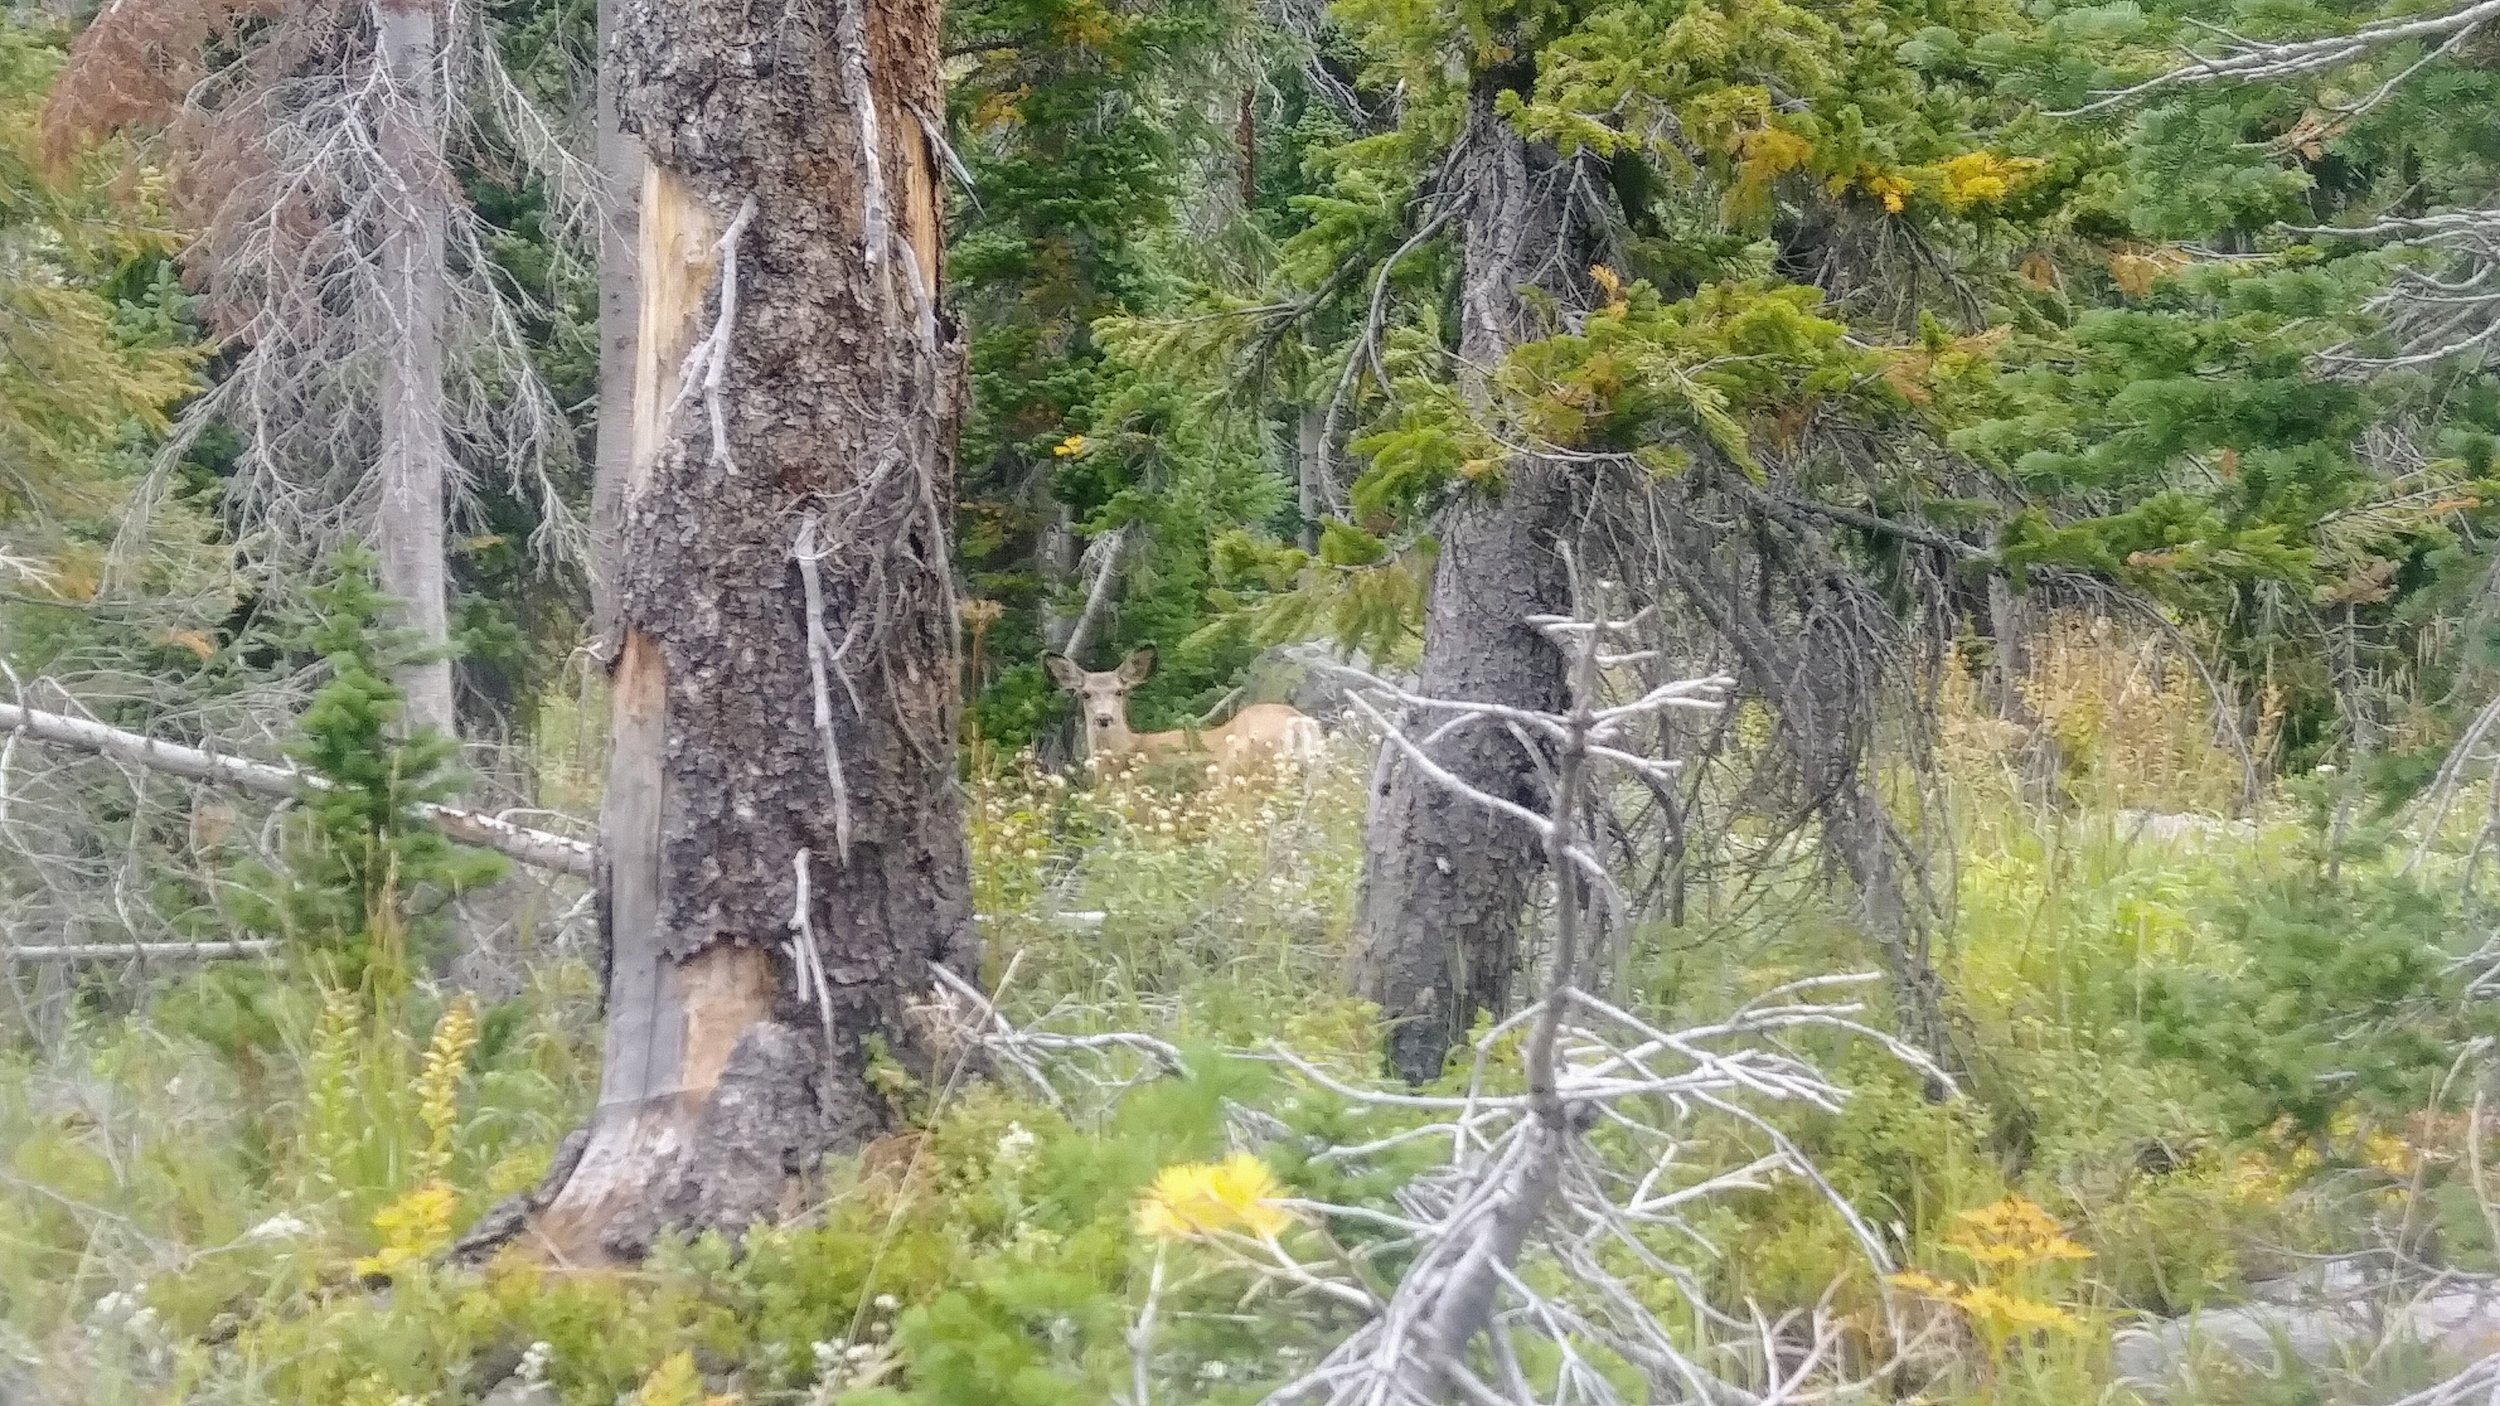 One of many mule deer spotted on the descent from Gilpin Lake